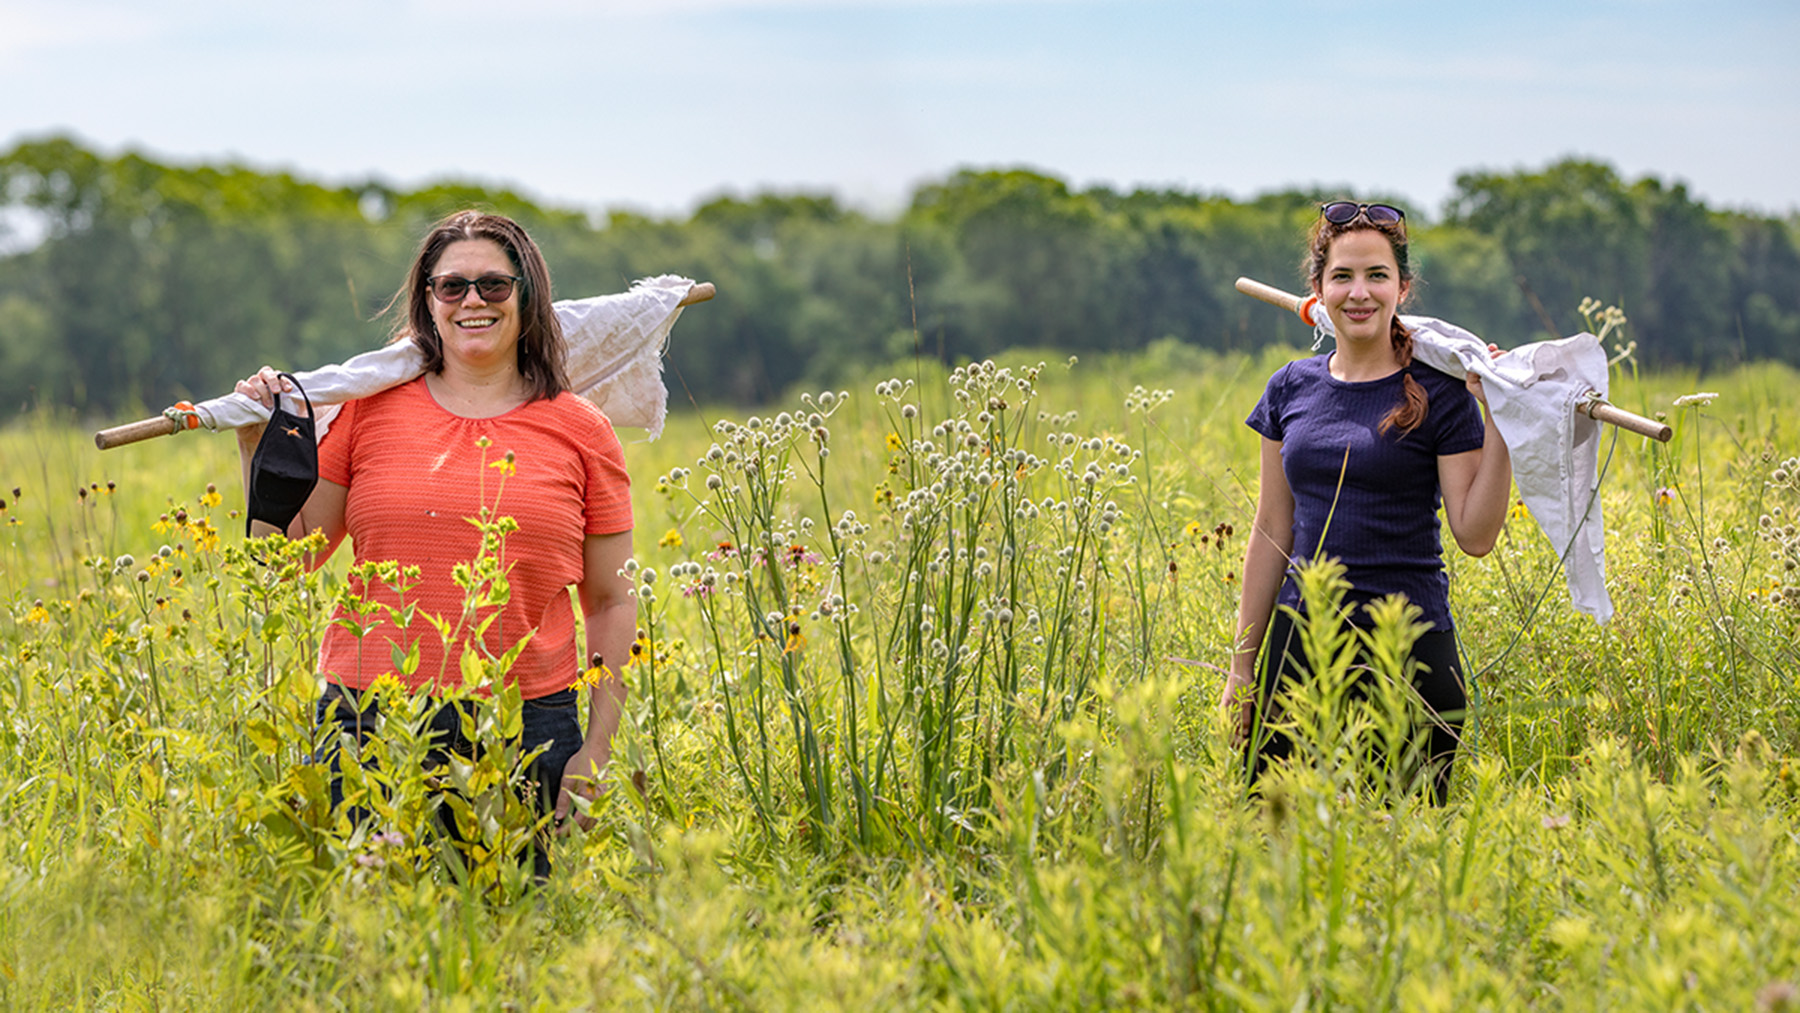 1.Illinois Natural History Survey vector ecologist Holly Tuten, left, graduate student Erica Hernandez and their colleagues discovered that Lone Star ticks in two Illinois counties were infected with the Heartland virus. Photo by Fred Zwicky